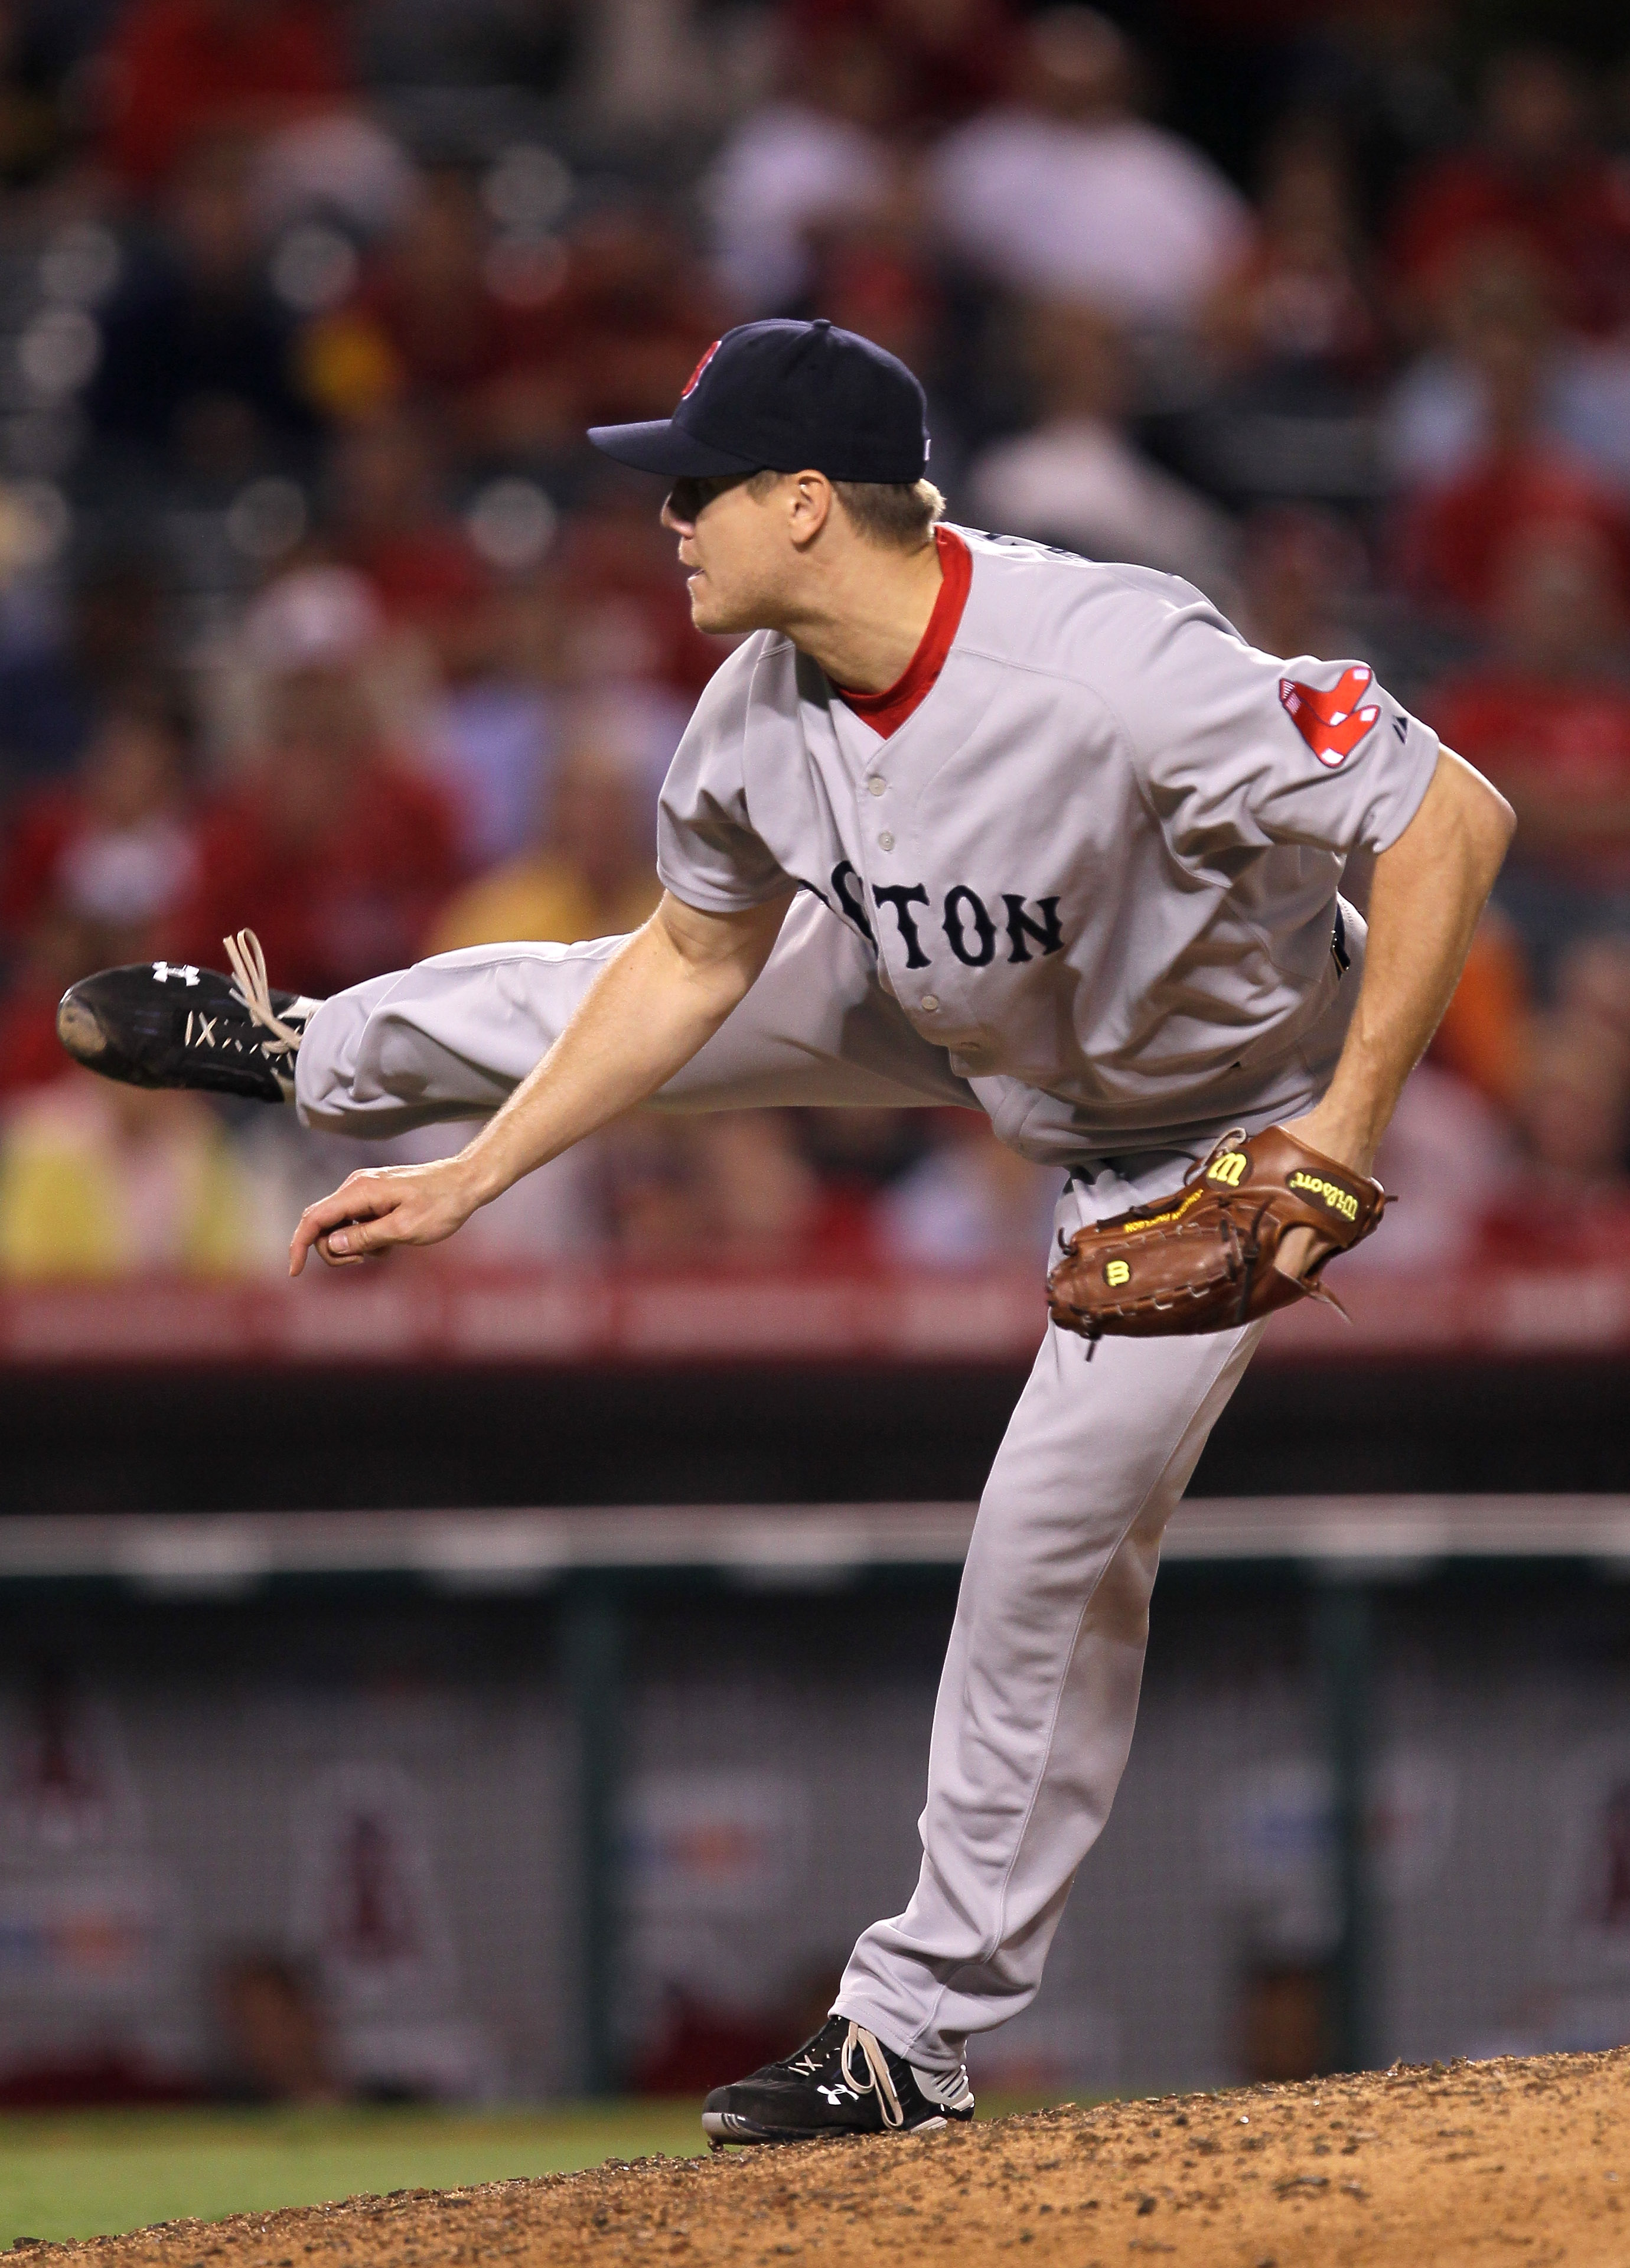 ANAHEIM, CA - JULY 27:  Closer Jonathan Paplebon #58 of the Boston Red Sox delivers a pitch on his way to picking up the save against the Los Angeles Angels of Anaheim on July 27, 2010 at Angel Stadium in Anaheim, California. The Red Sox won 4-2.  (Photo